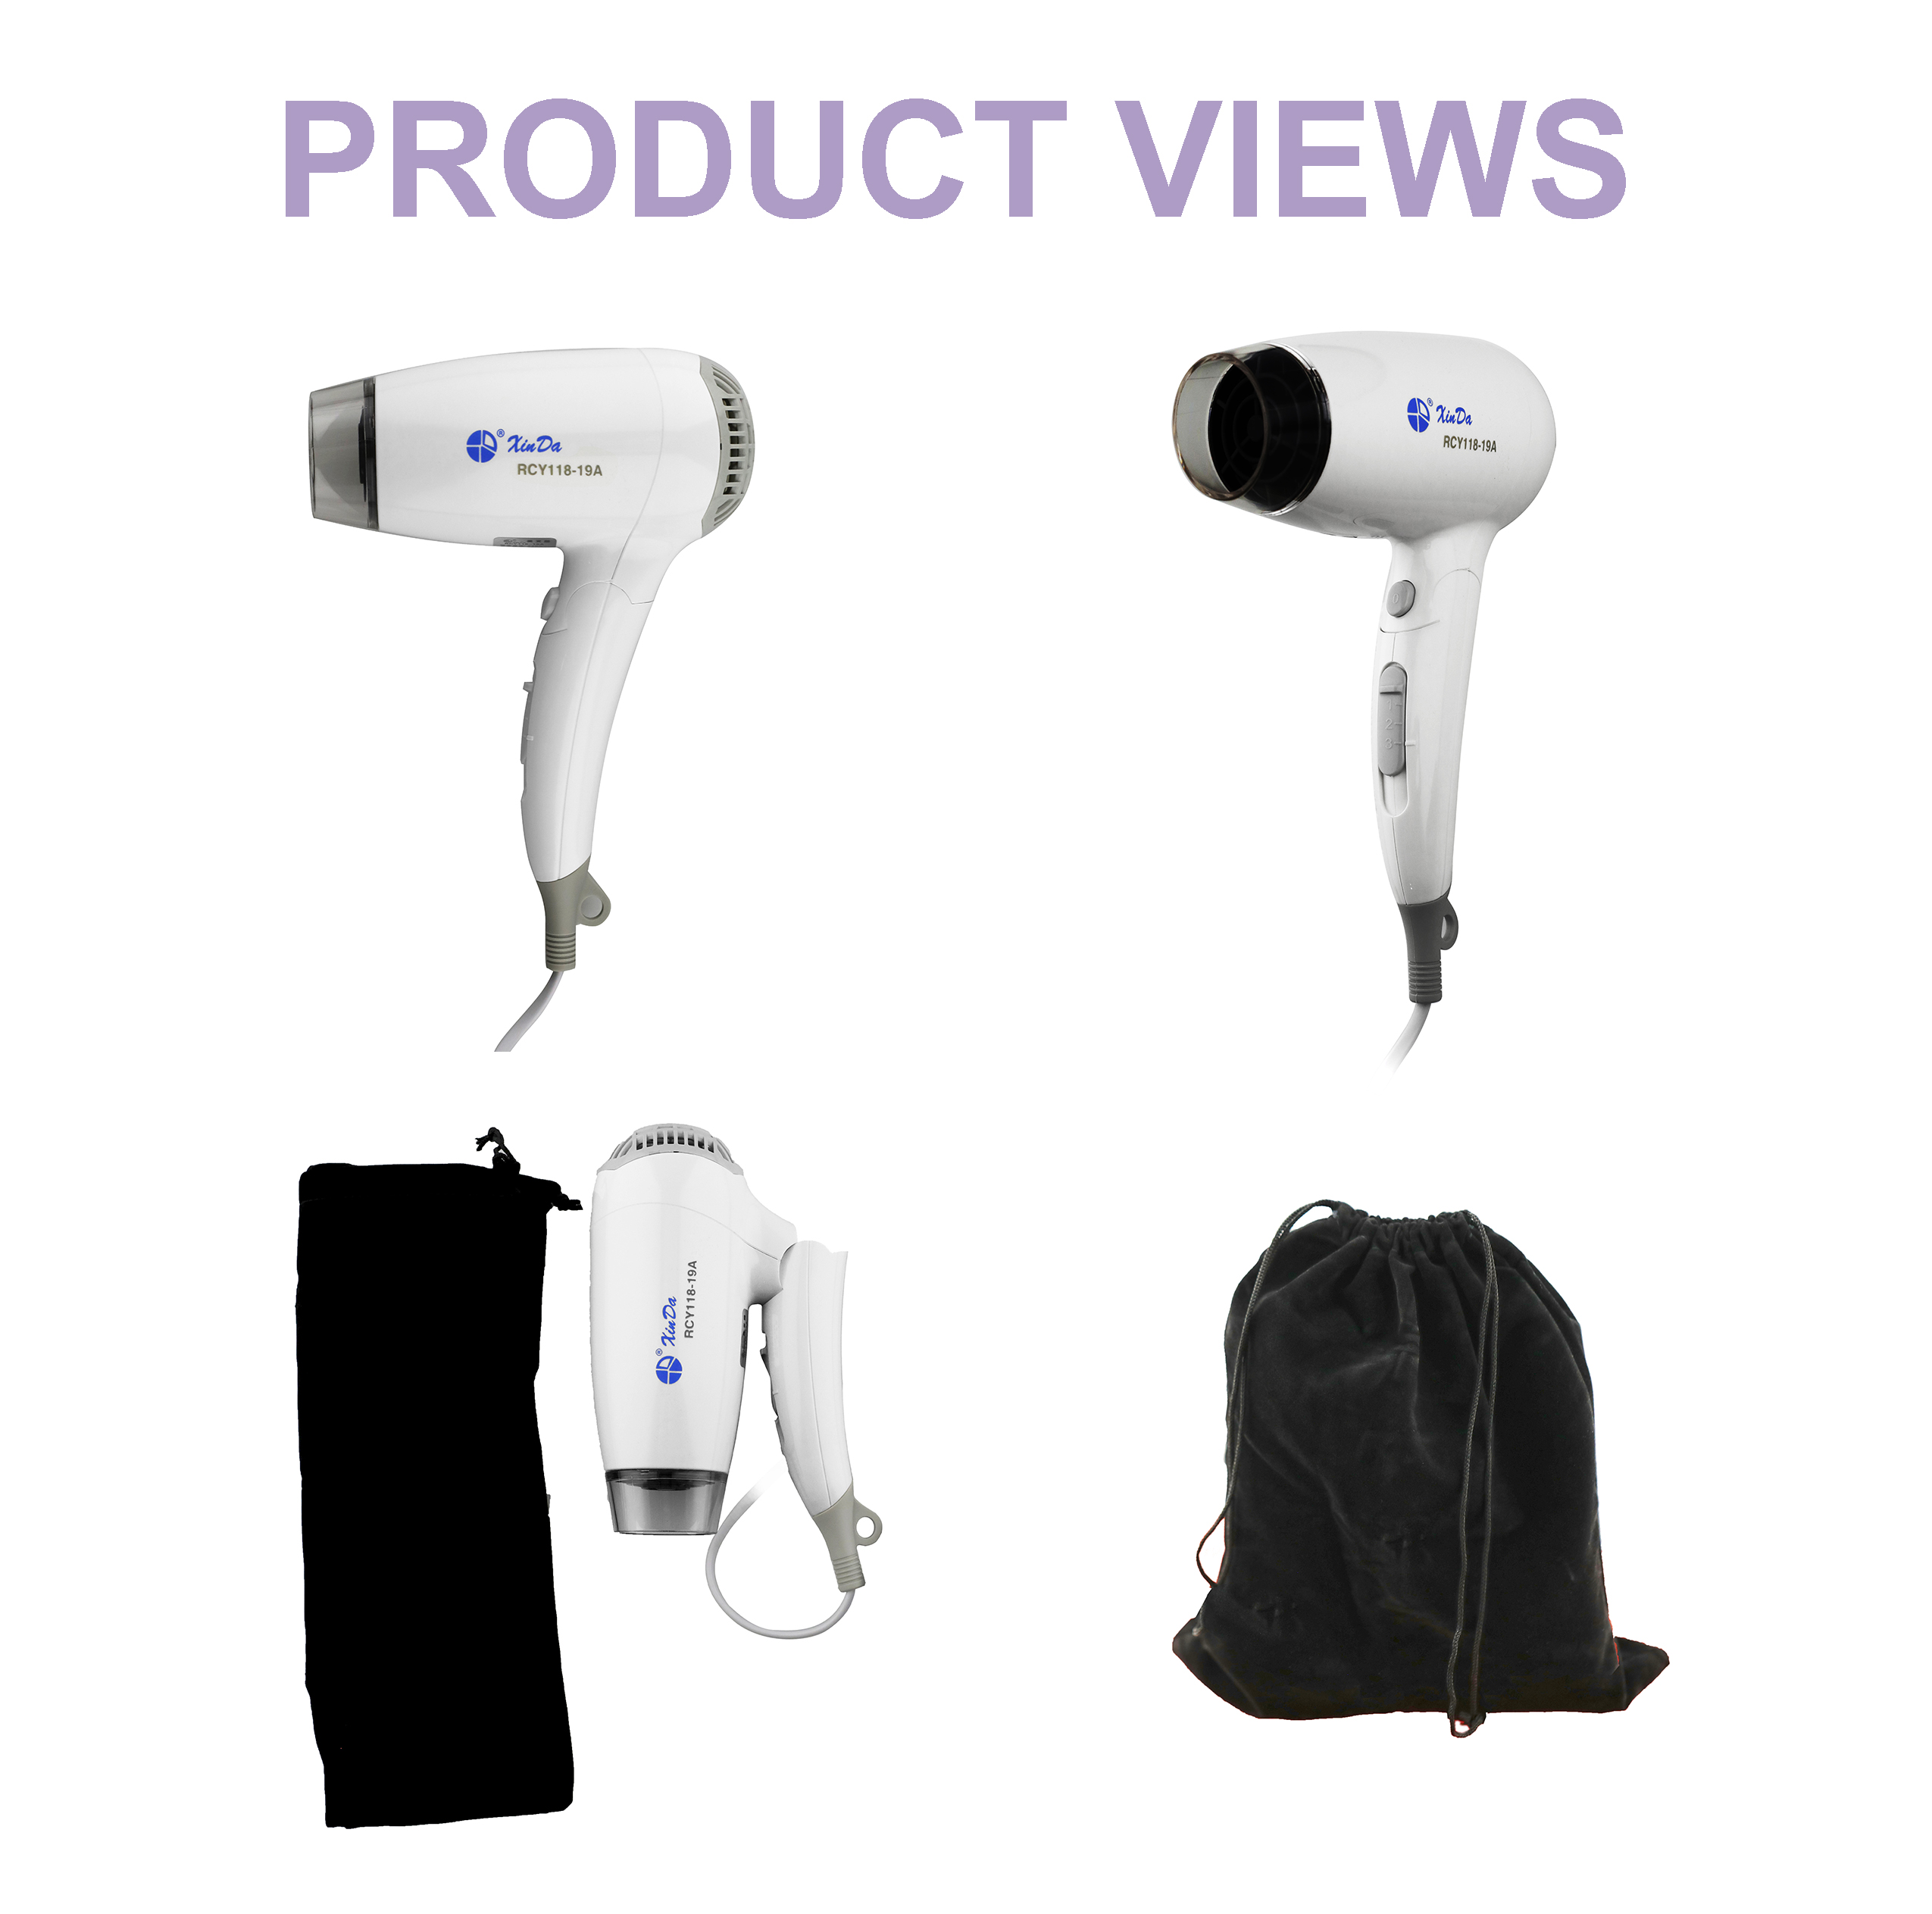 Hair dryer with foldable handle